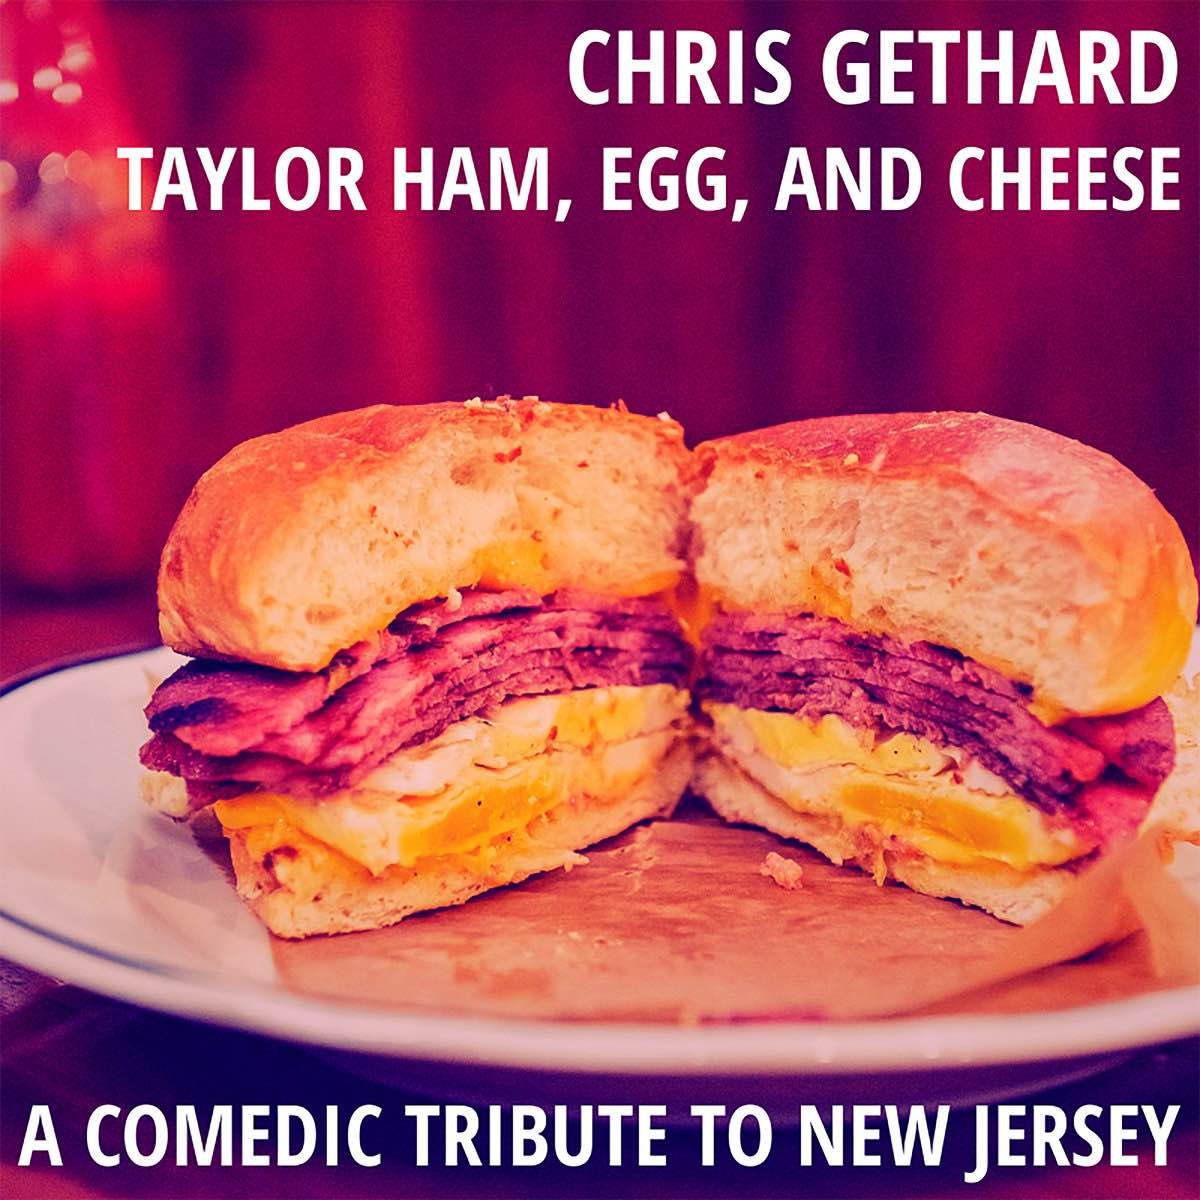 Chris Gethard Surprise Releases New Comedy Album 'Taylor Ham, Egg, and Cheese'